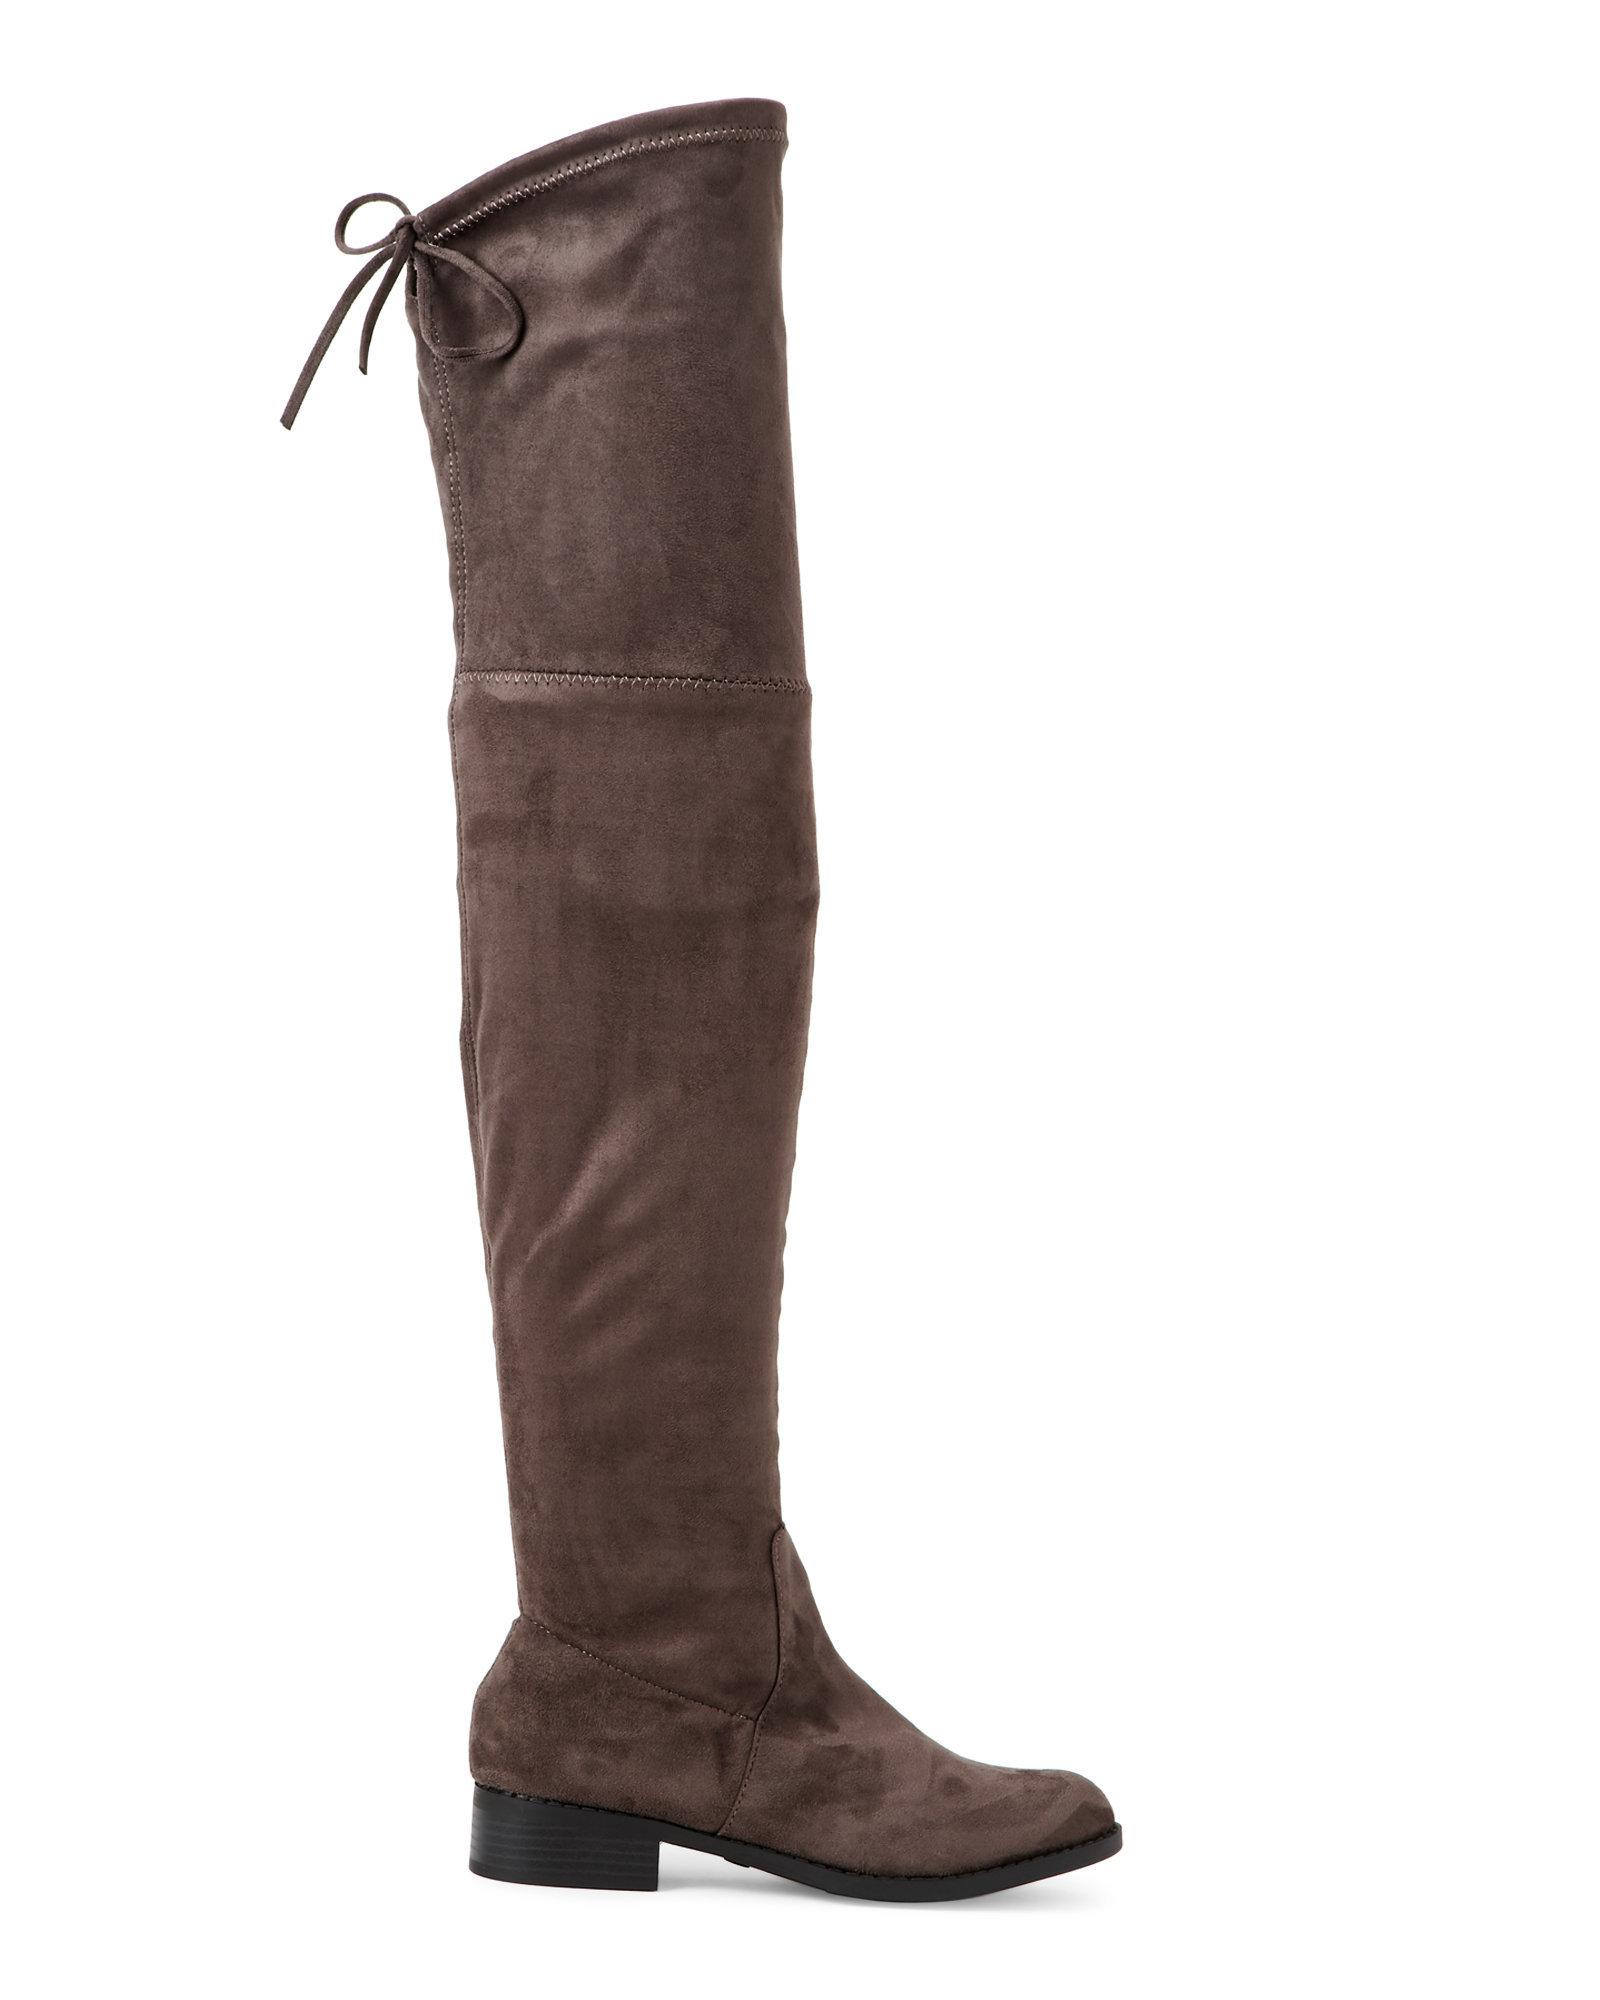 6ce85a226 Catherine Malandrino Grey Morcha Over The Knee Boots in Gray - Lyst